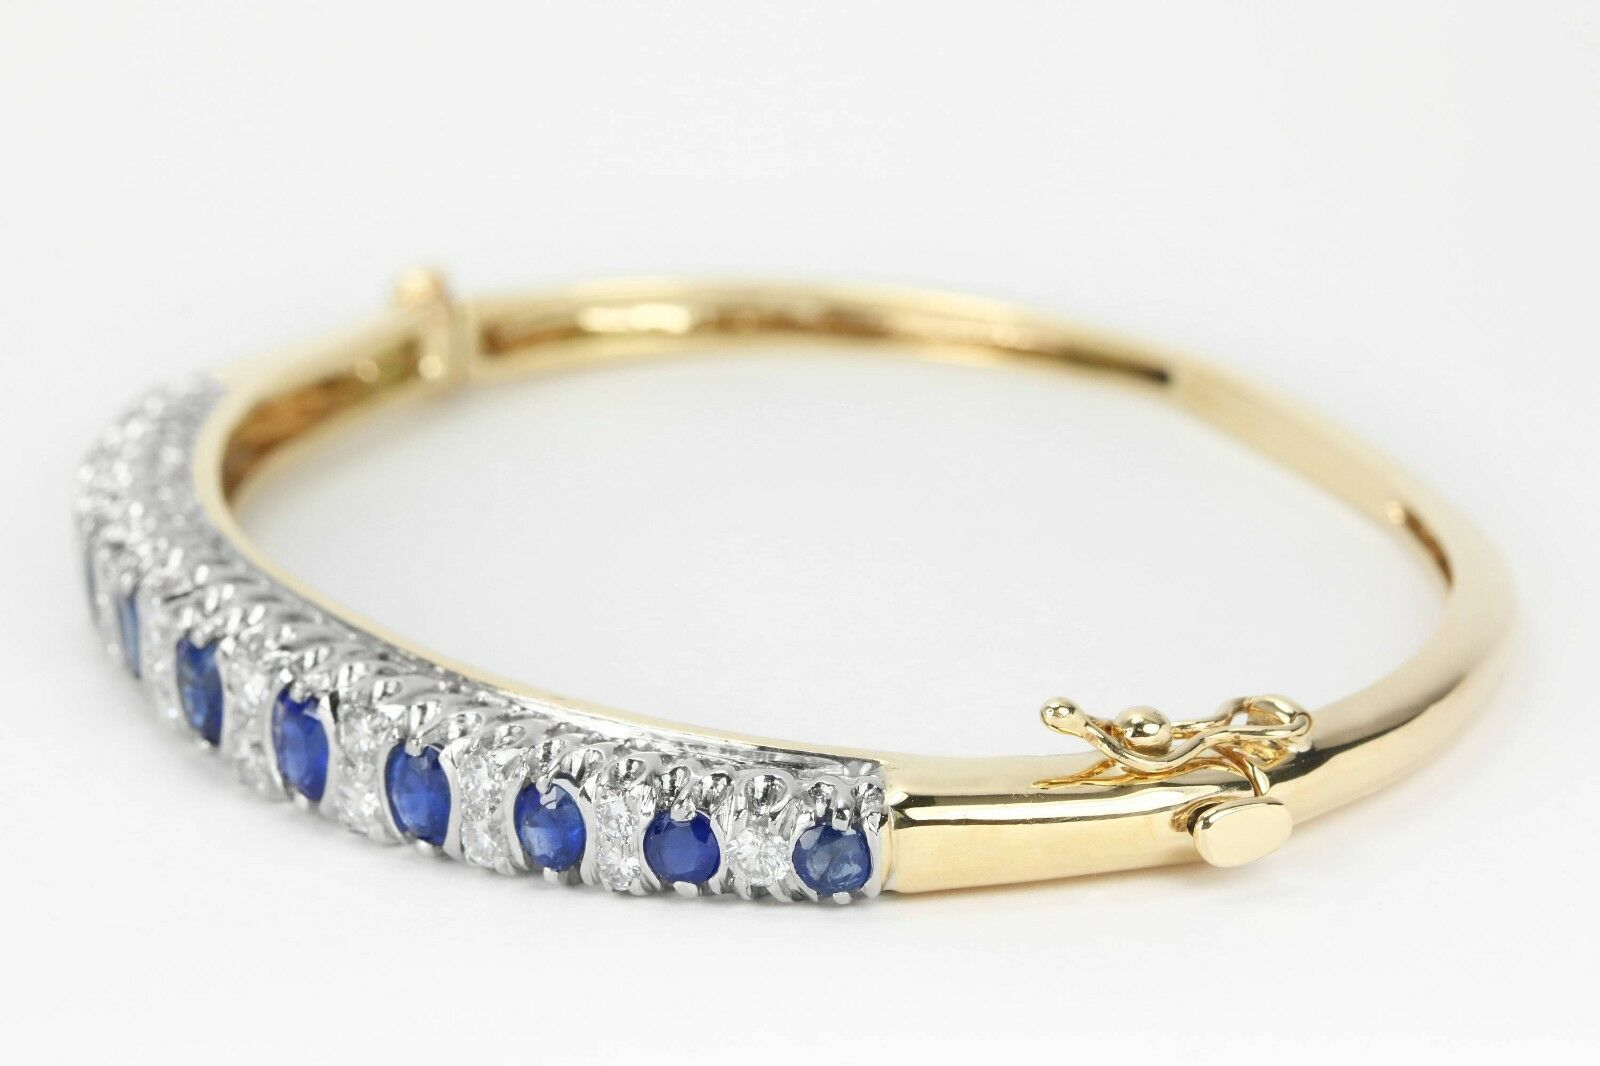 bracelet silver charms bracelets sterling and diamond hand bangles austria new glass shoes blue style sapphire gold luxury bangle product jewelry